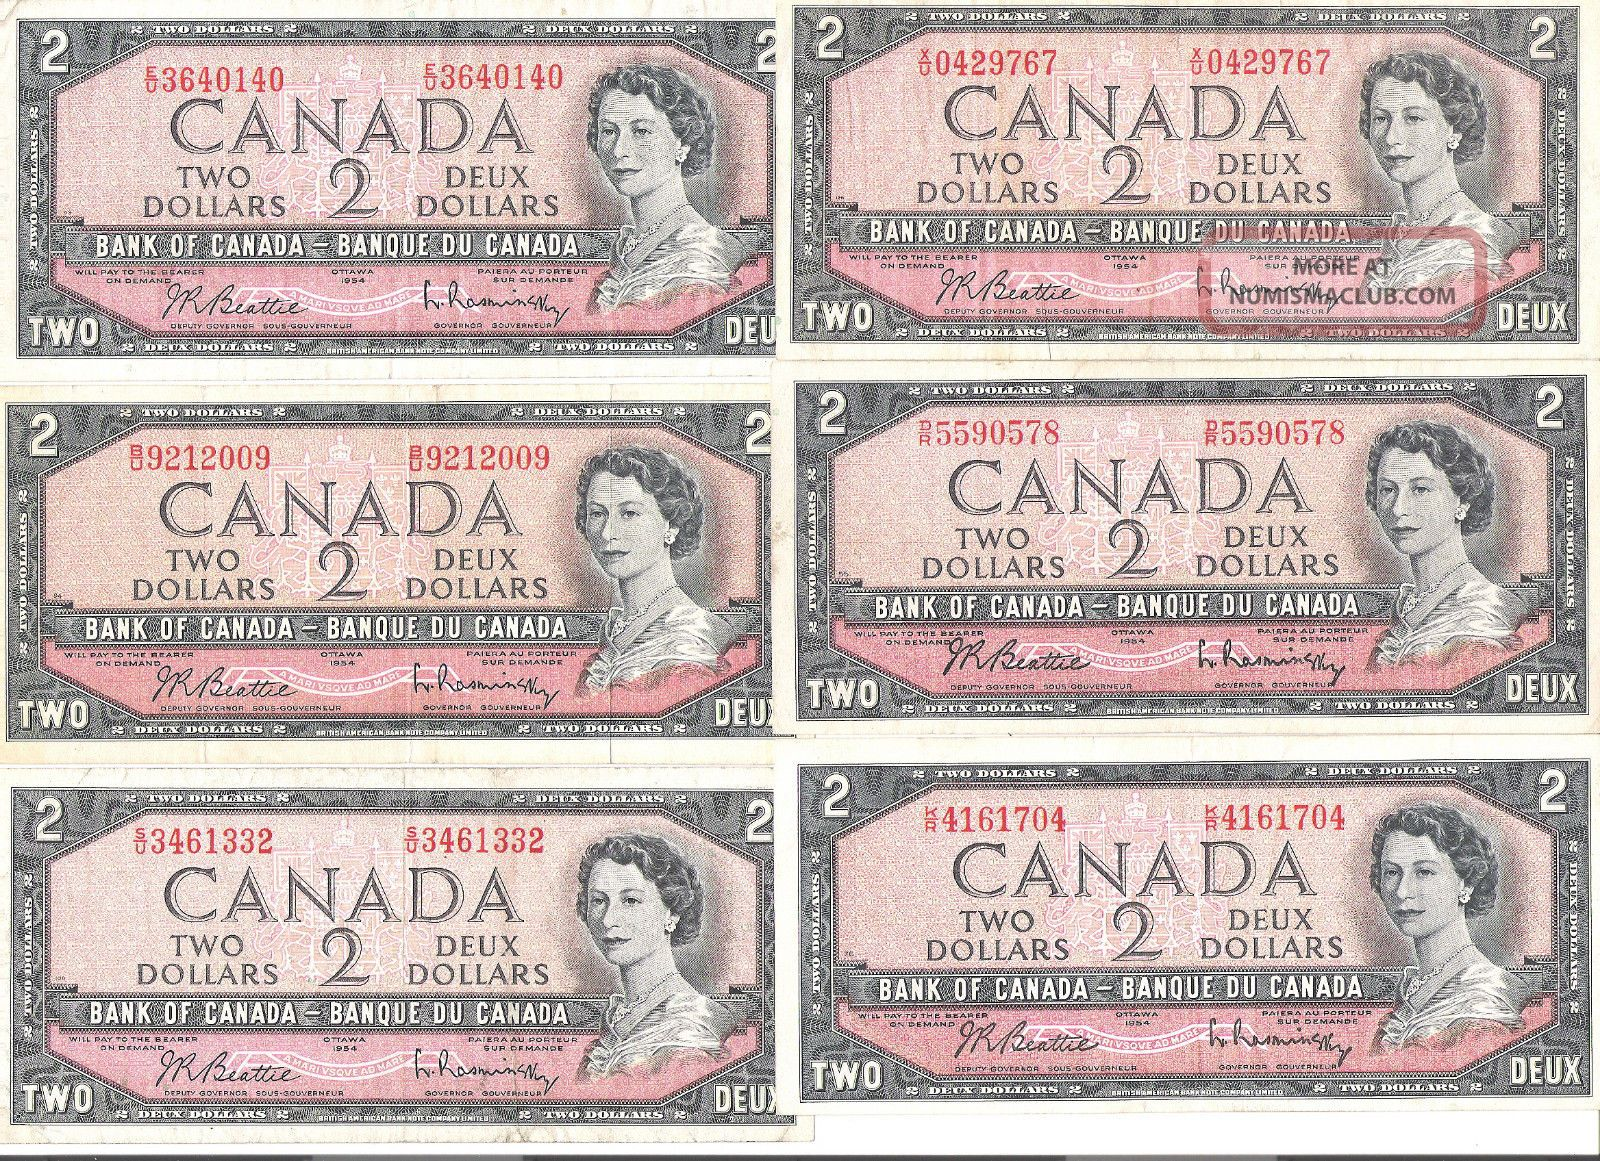 canadian paper money Executive currency offers: rare paper money collecting, old money, error notes, rare currency collecting, federal reserve bank notea.